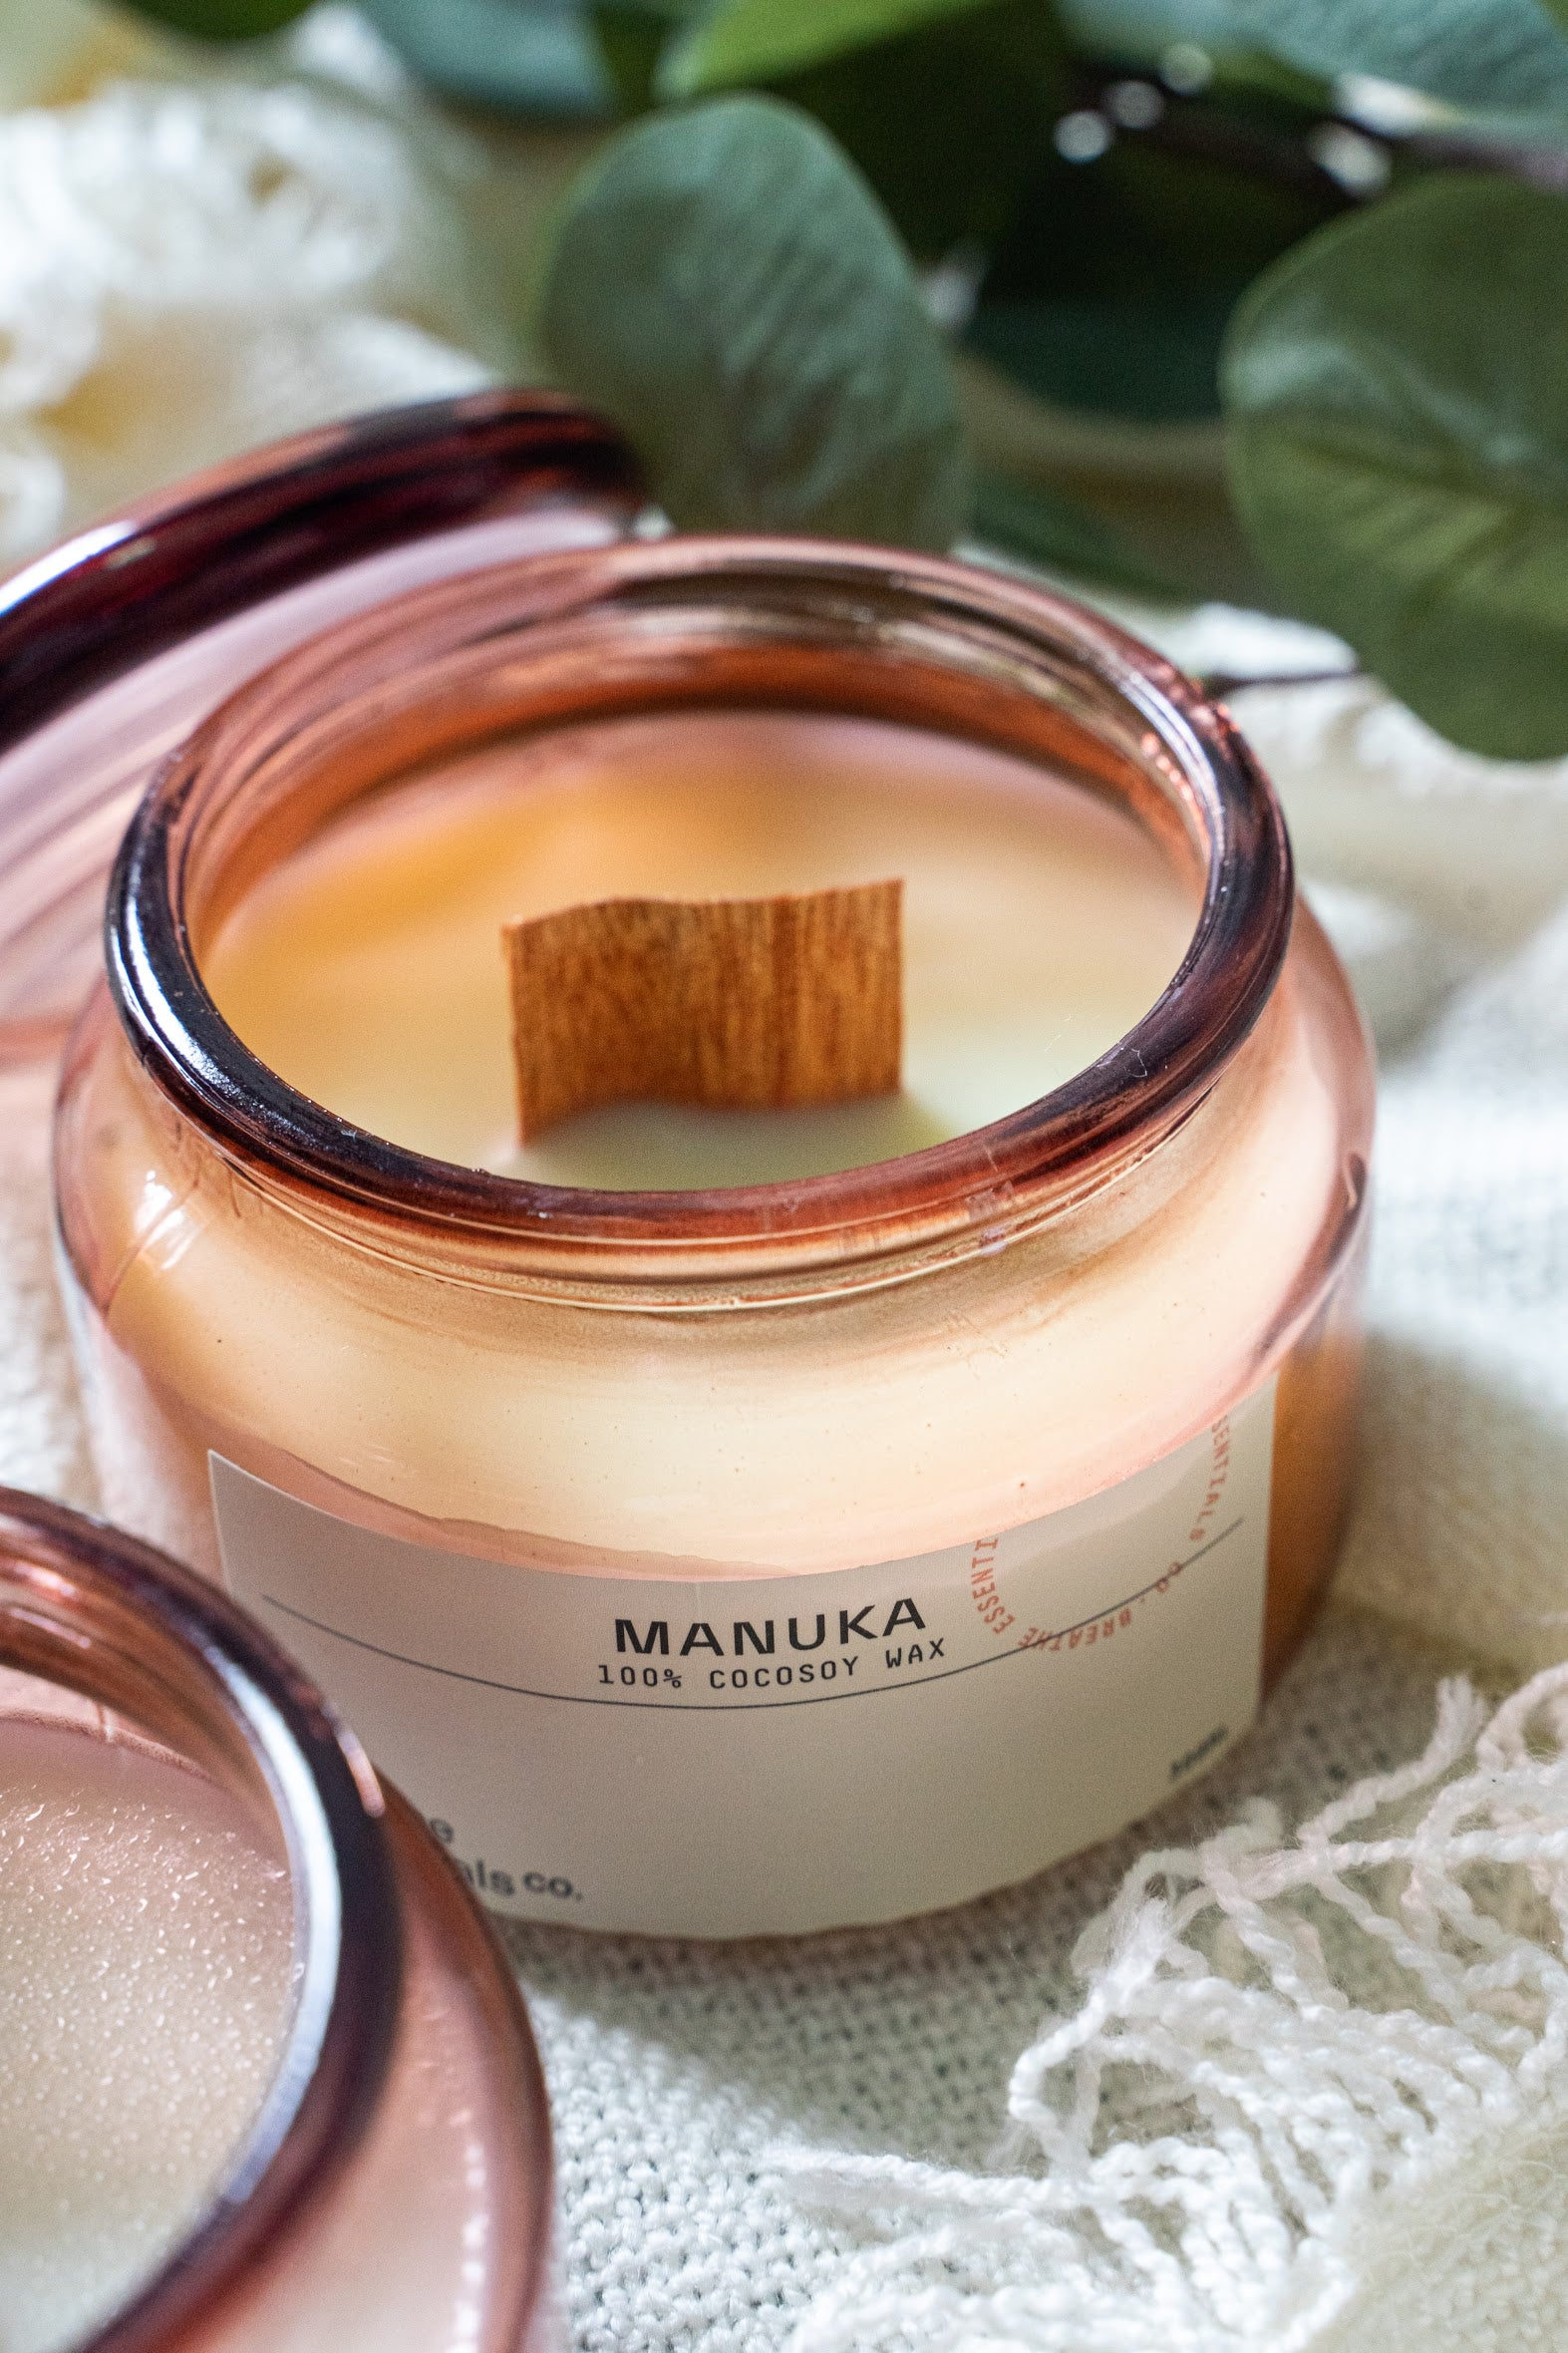 Manuka Cocosoy Scented Candle | Breathe Essentials Co